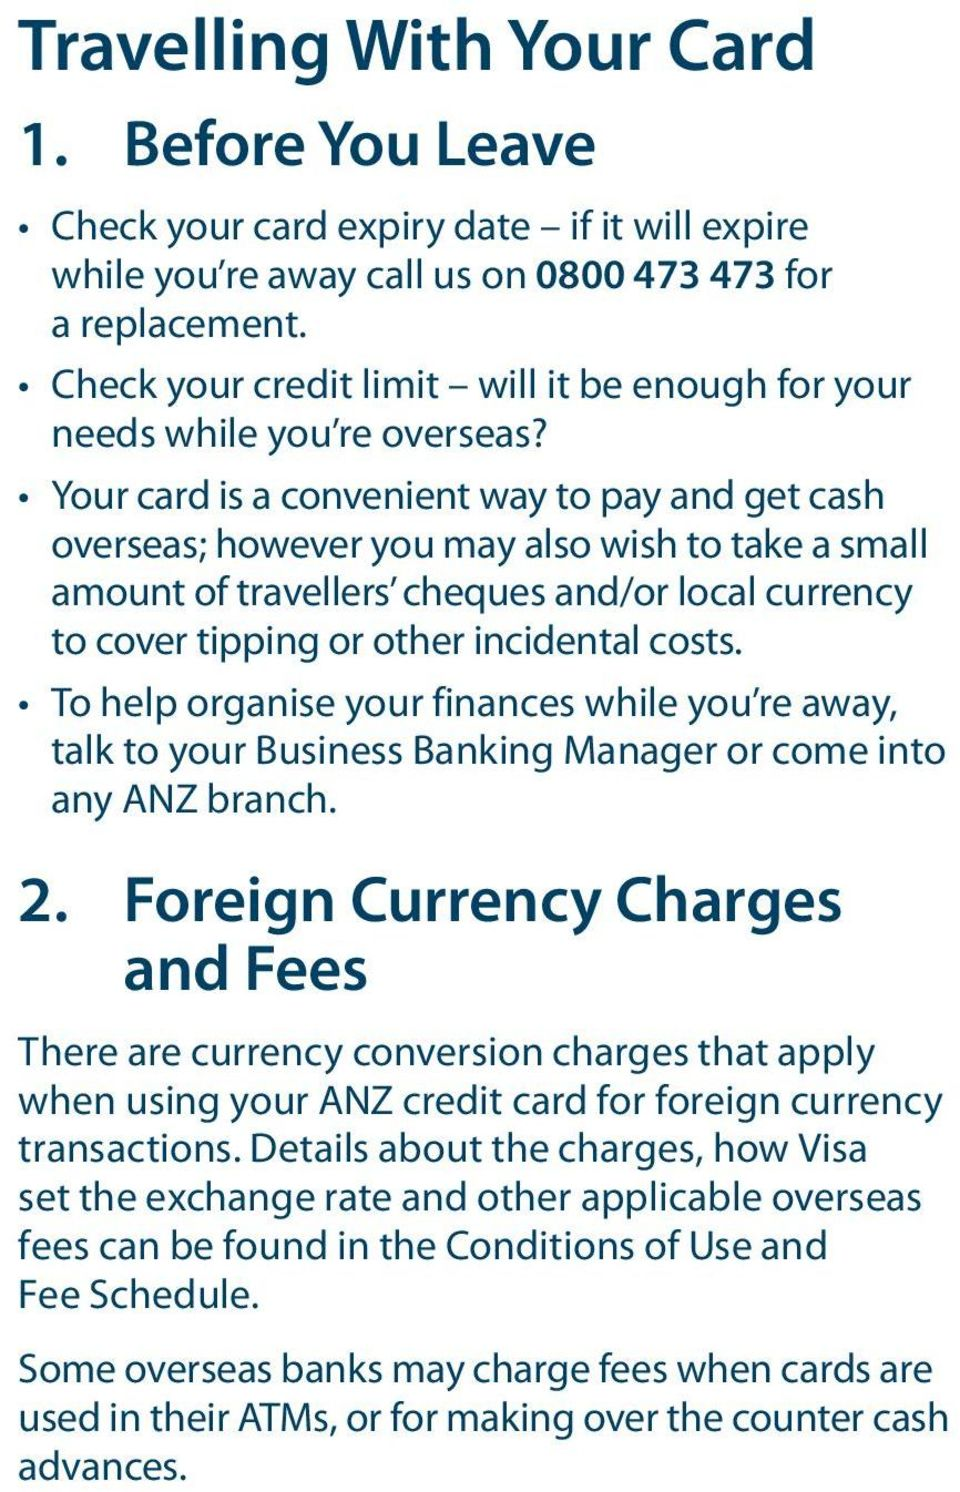 Your card is a convenient way to pay and get cash overseas; however you may also wish to take a small amount of travellers cheques and/or local currency to cover tipping or other incidental costs.